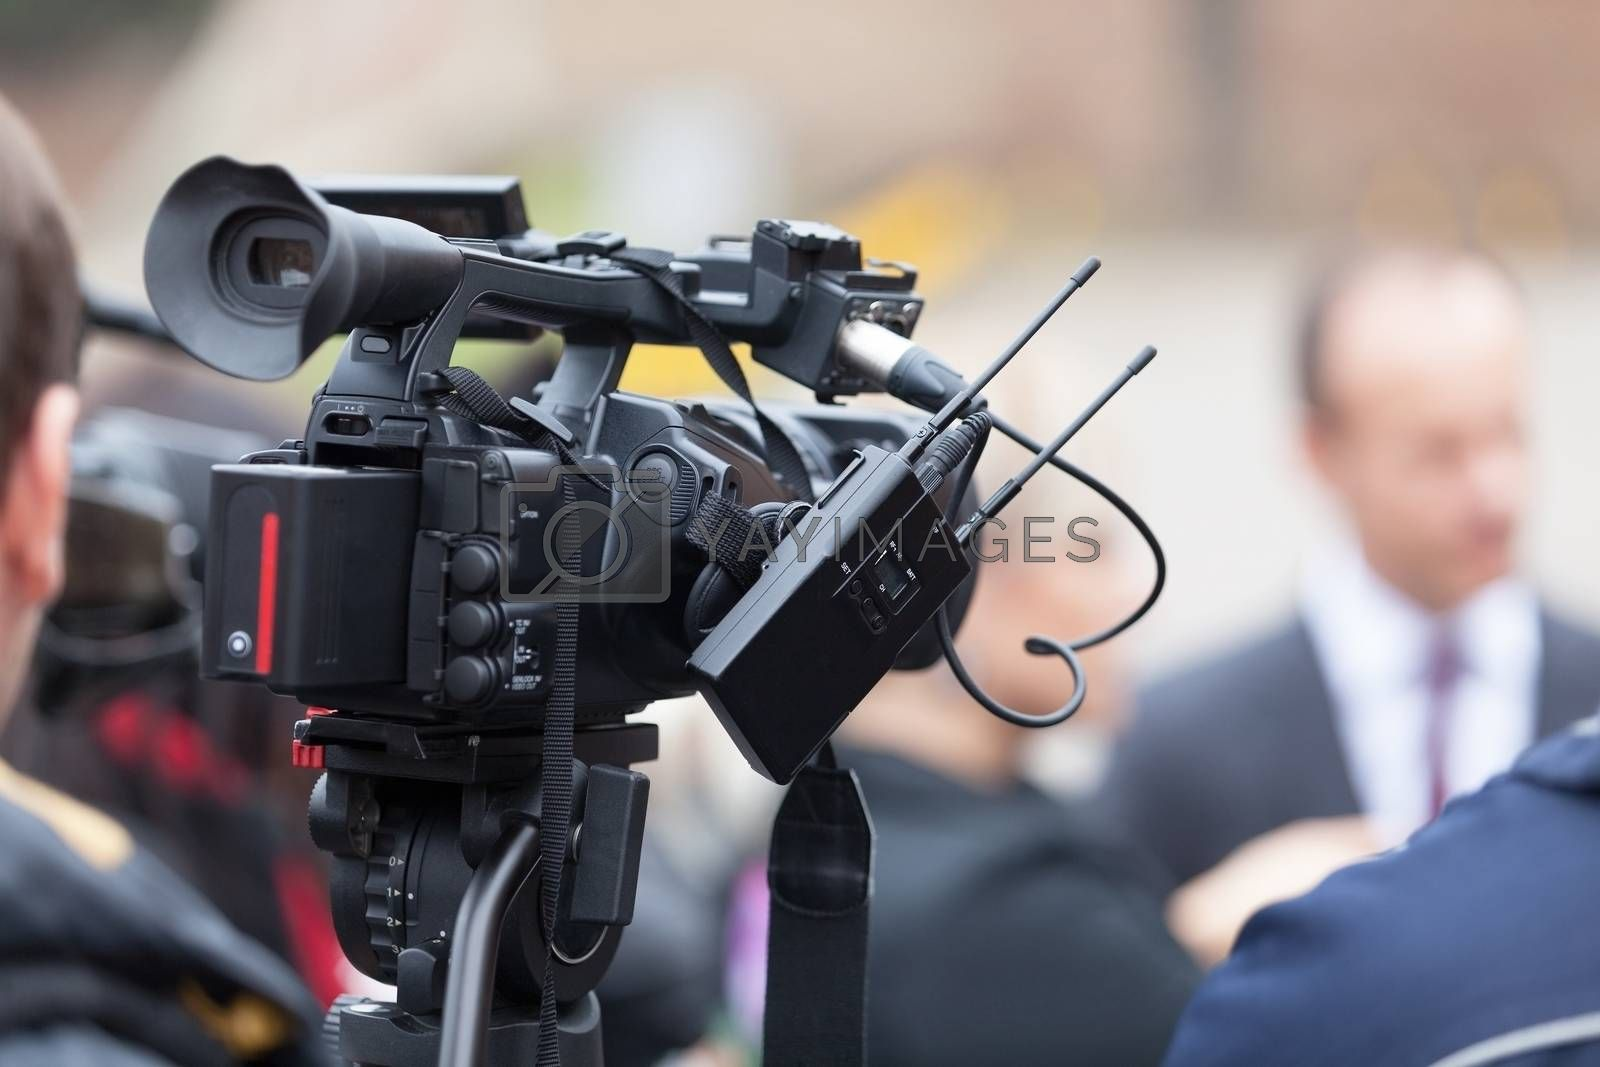 News conference. Covering an event with a television camera.